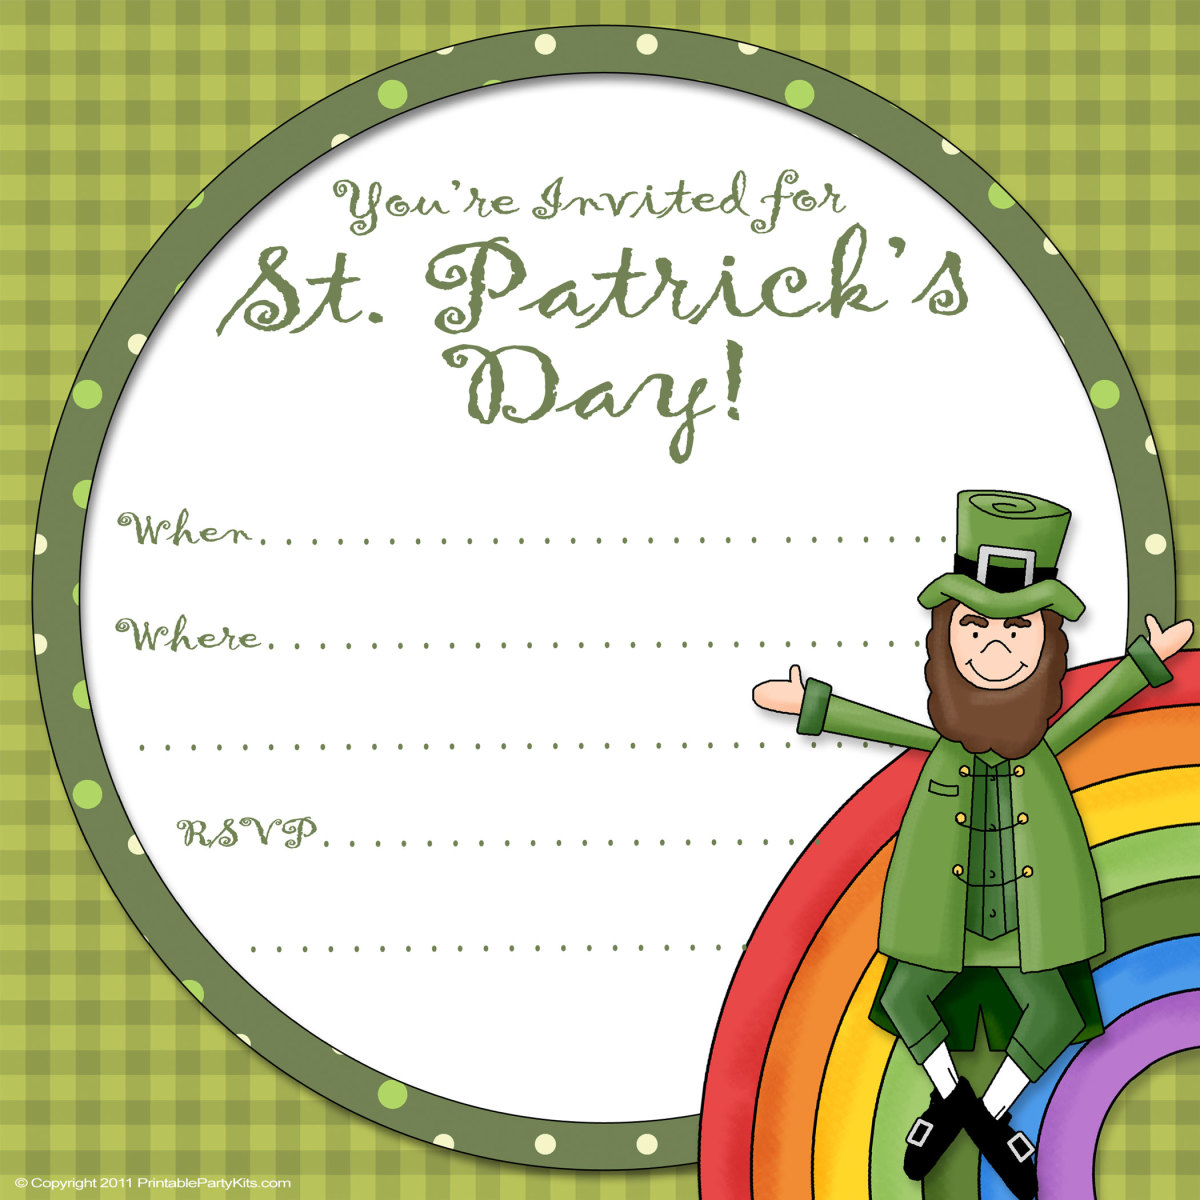 Free printable St. Patrick's Day invitation with green plaid, and a cartoon rainbow and leprechaun